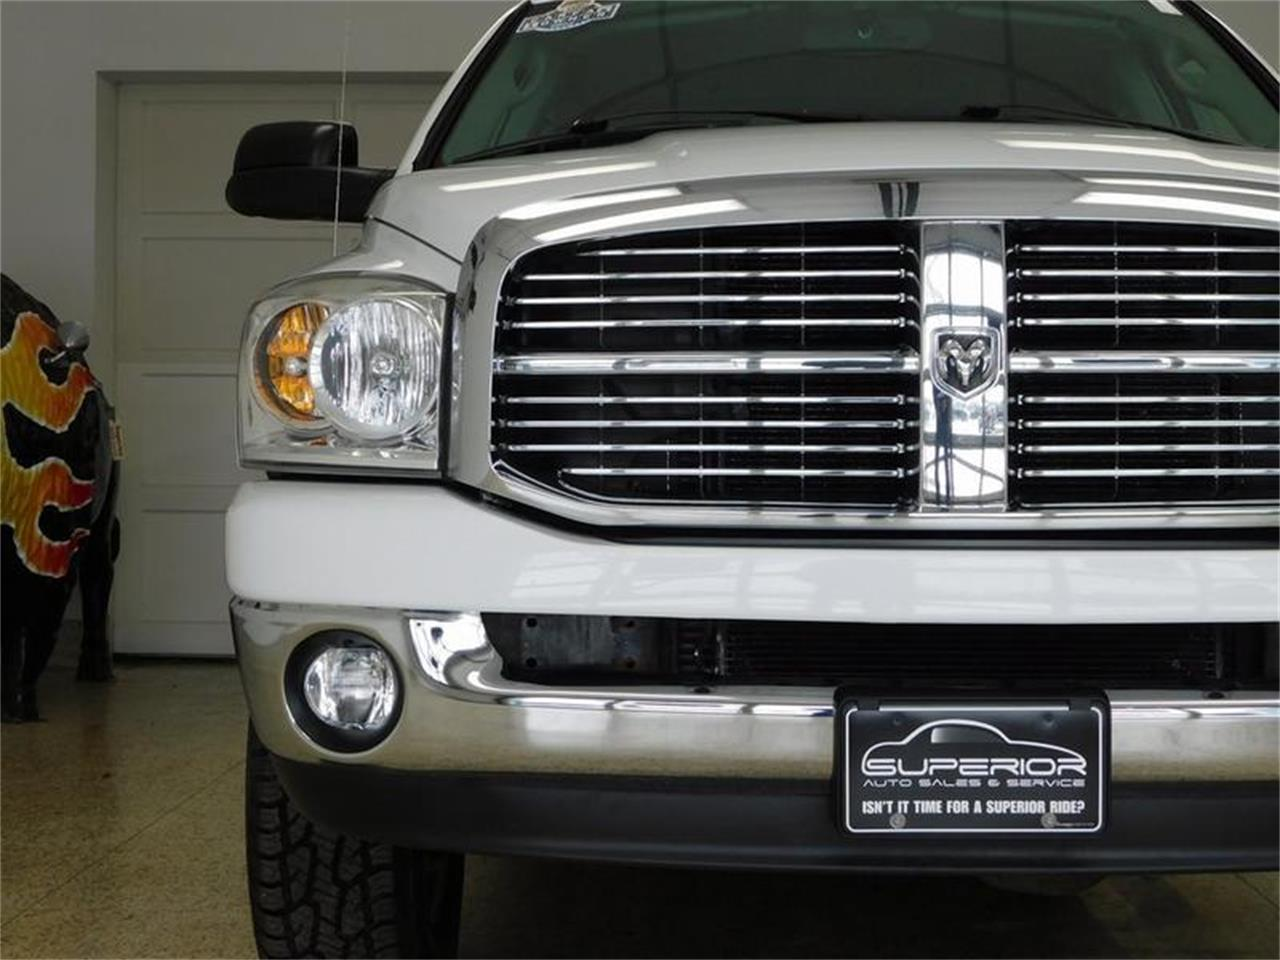 2009 Dodge Ram 3500 for sale in Hamburg, NY – photo 39